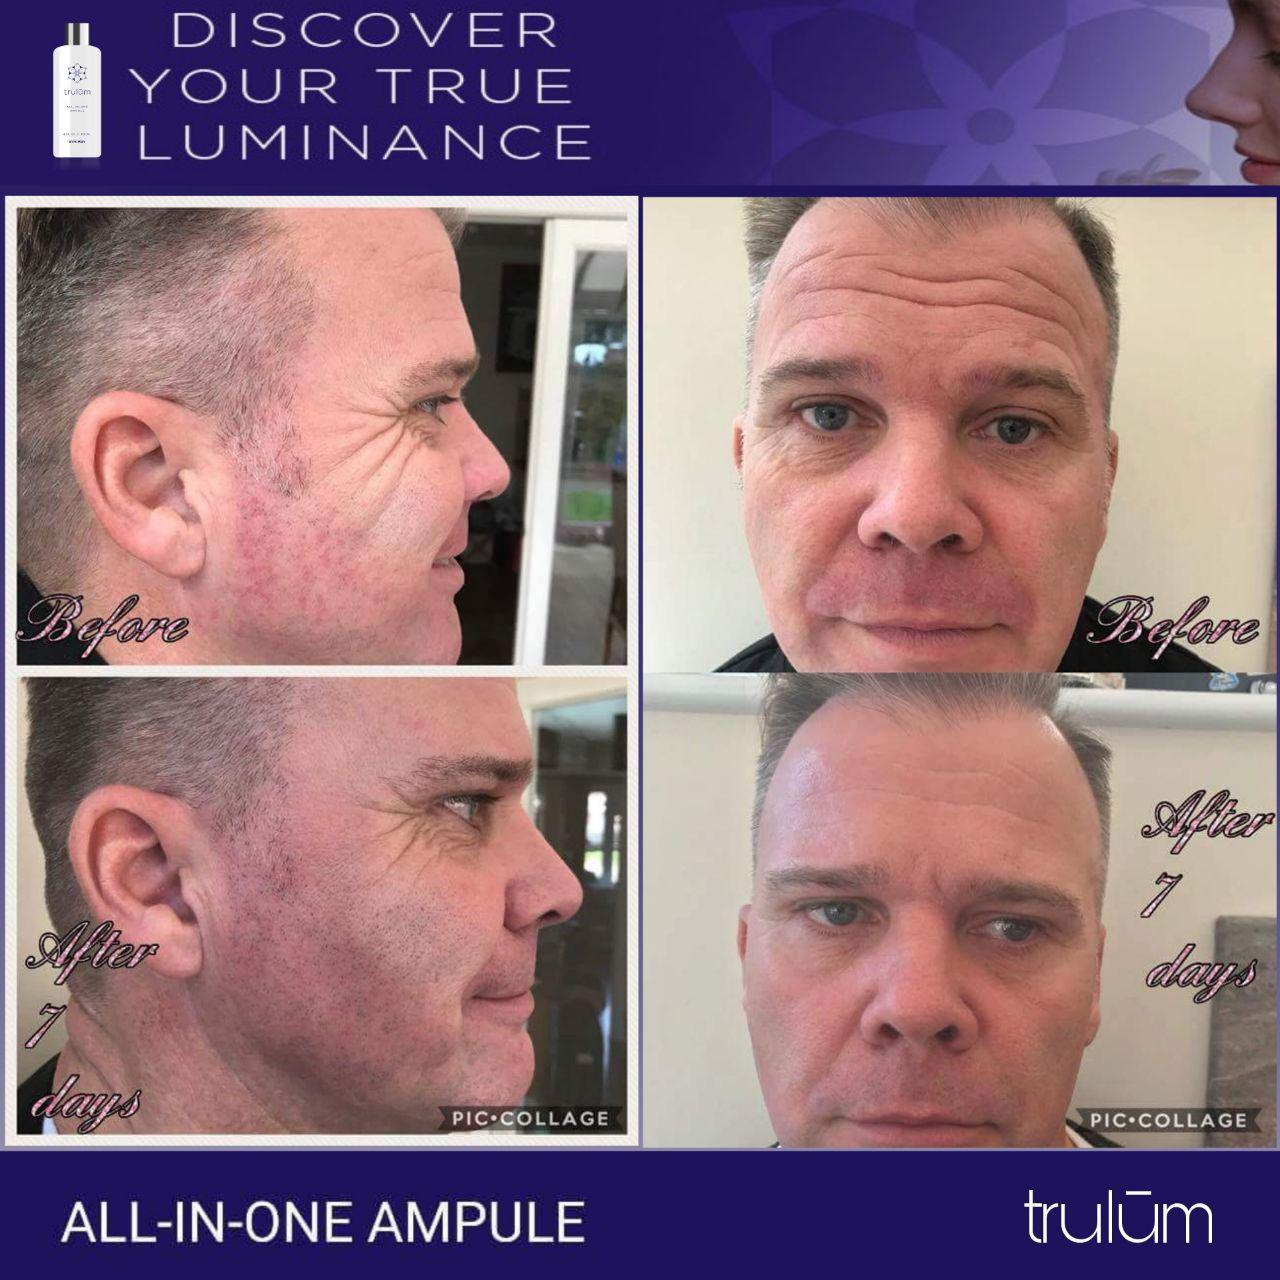 Jual Trulum All In One Ampoule Di Kutasari WA: 08112338376